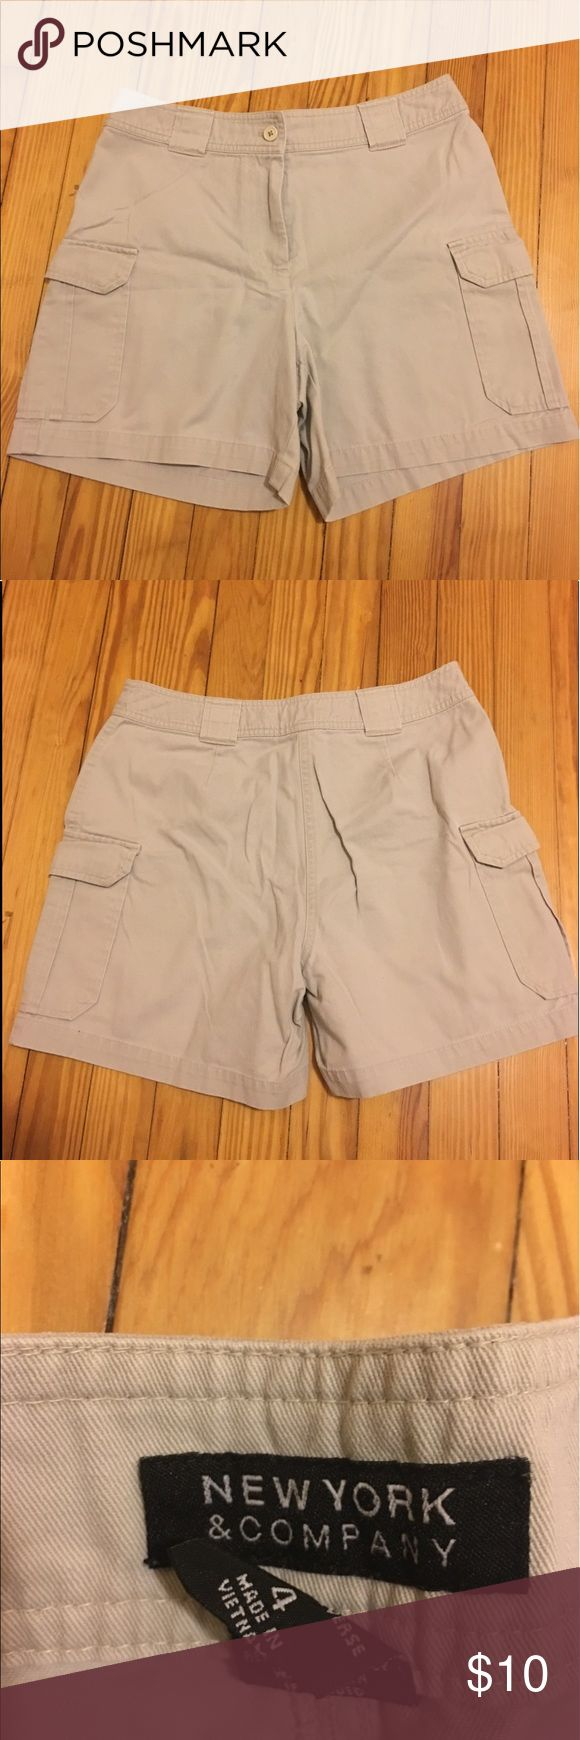 NYC Beige Shorts Size 4 These New York and Company Beige Shorts are absolutely perfect. Great condition! Zero flaws. Good quality. These are the perfect summer shorts 🌞🌼🌸 New York & Company Shorts